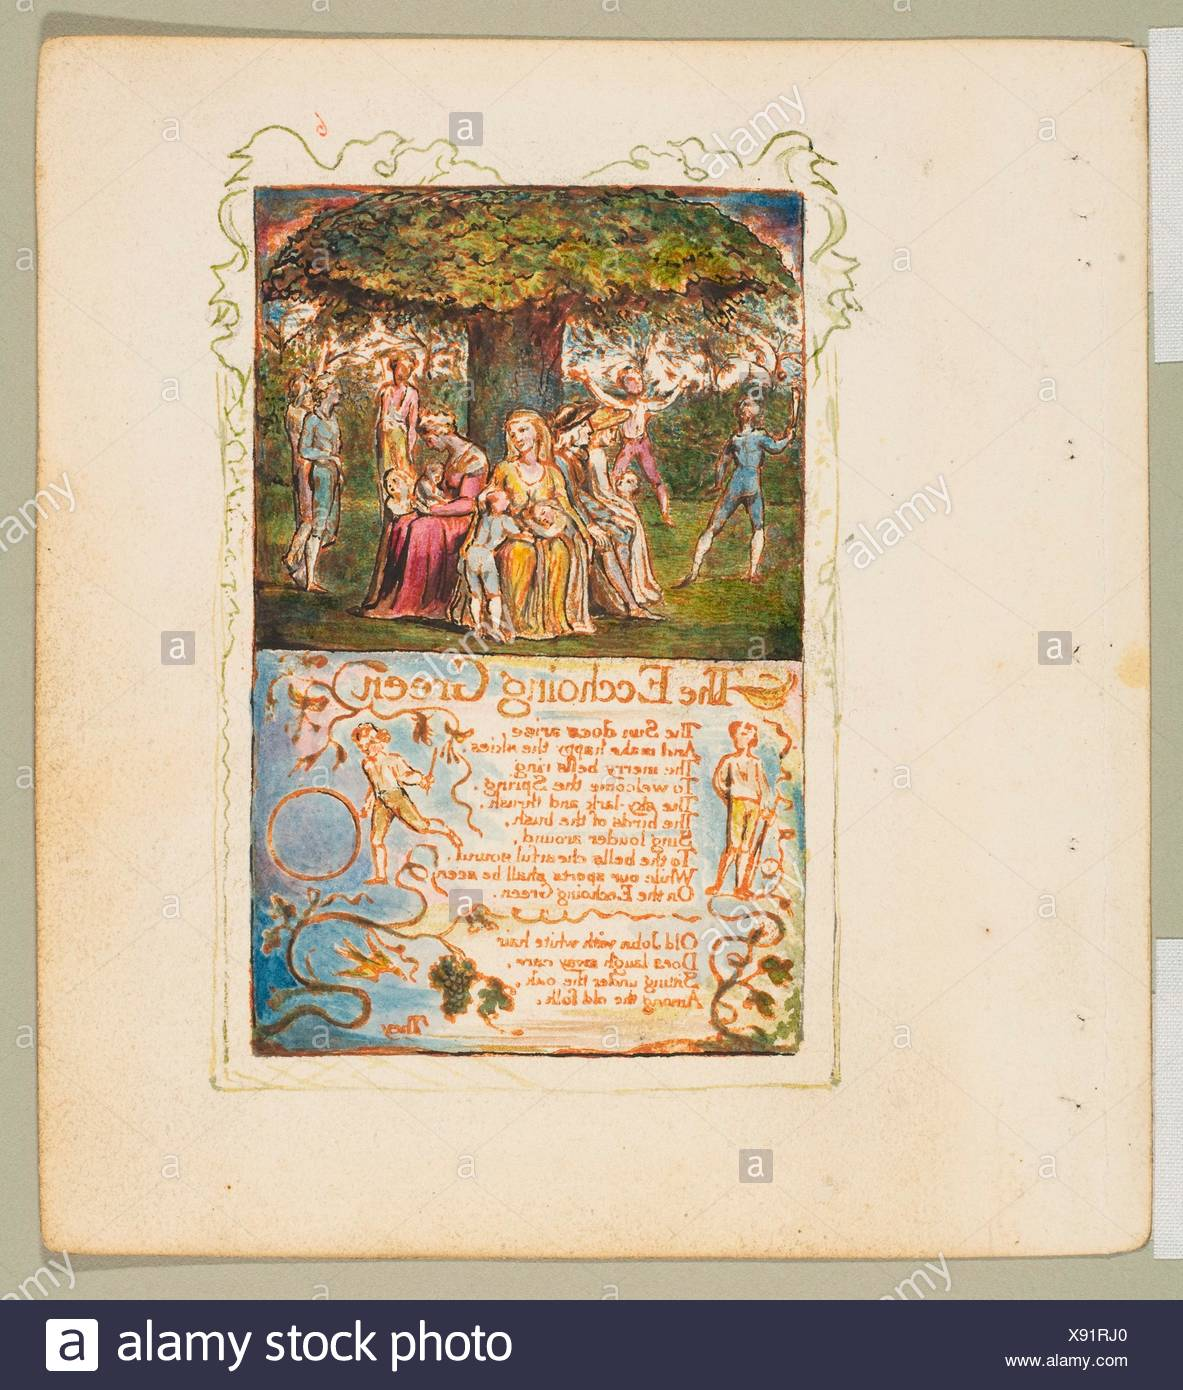 william blake songs of innocence and experience pdf